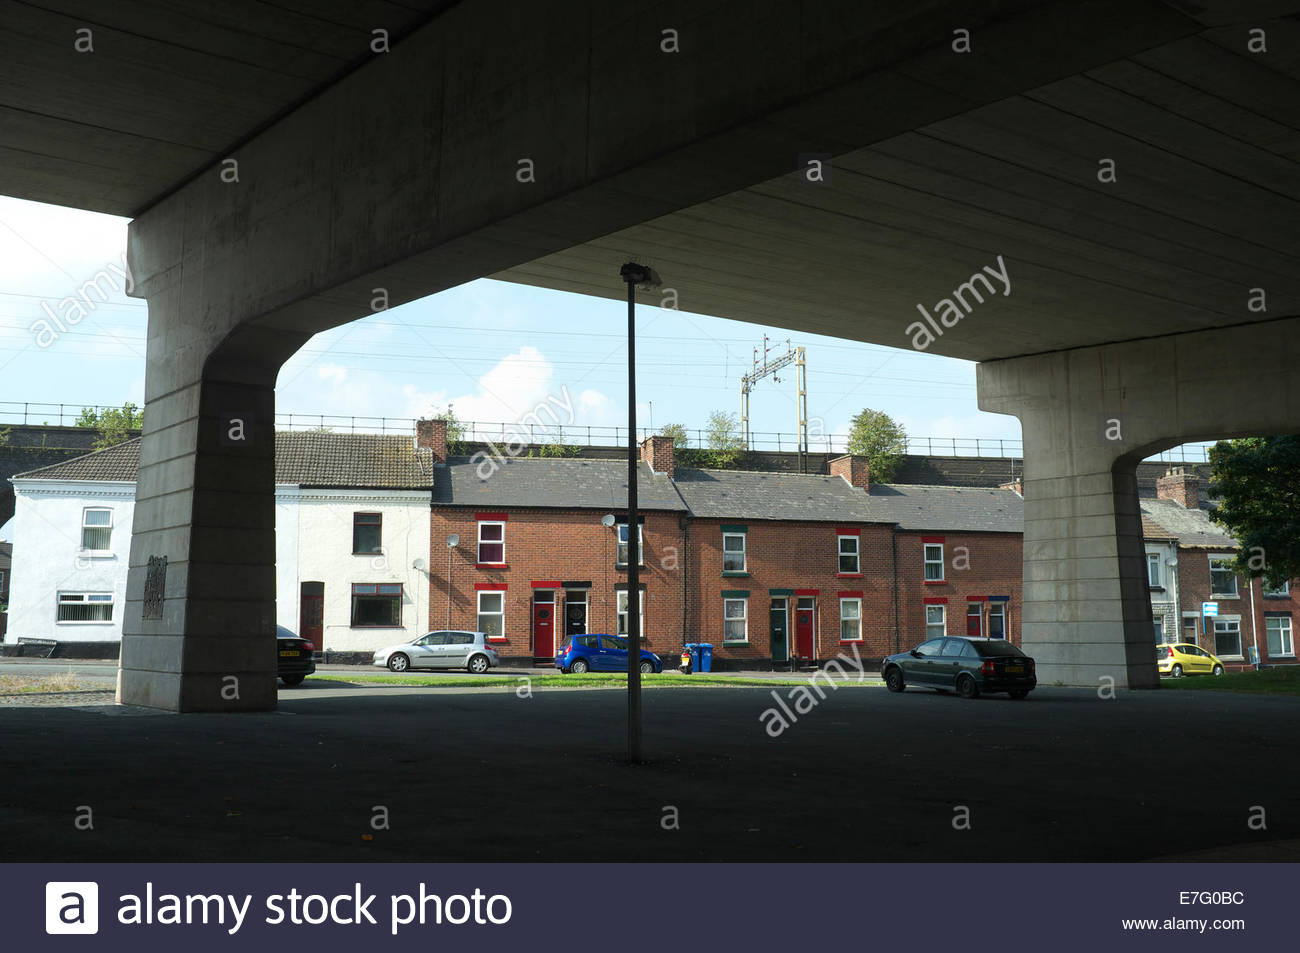 Old terraced homes, as seen from underneath a concrete flyover, in Runcorn, Cheshire, UK. - Stock Image